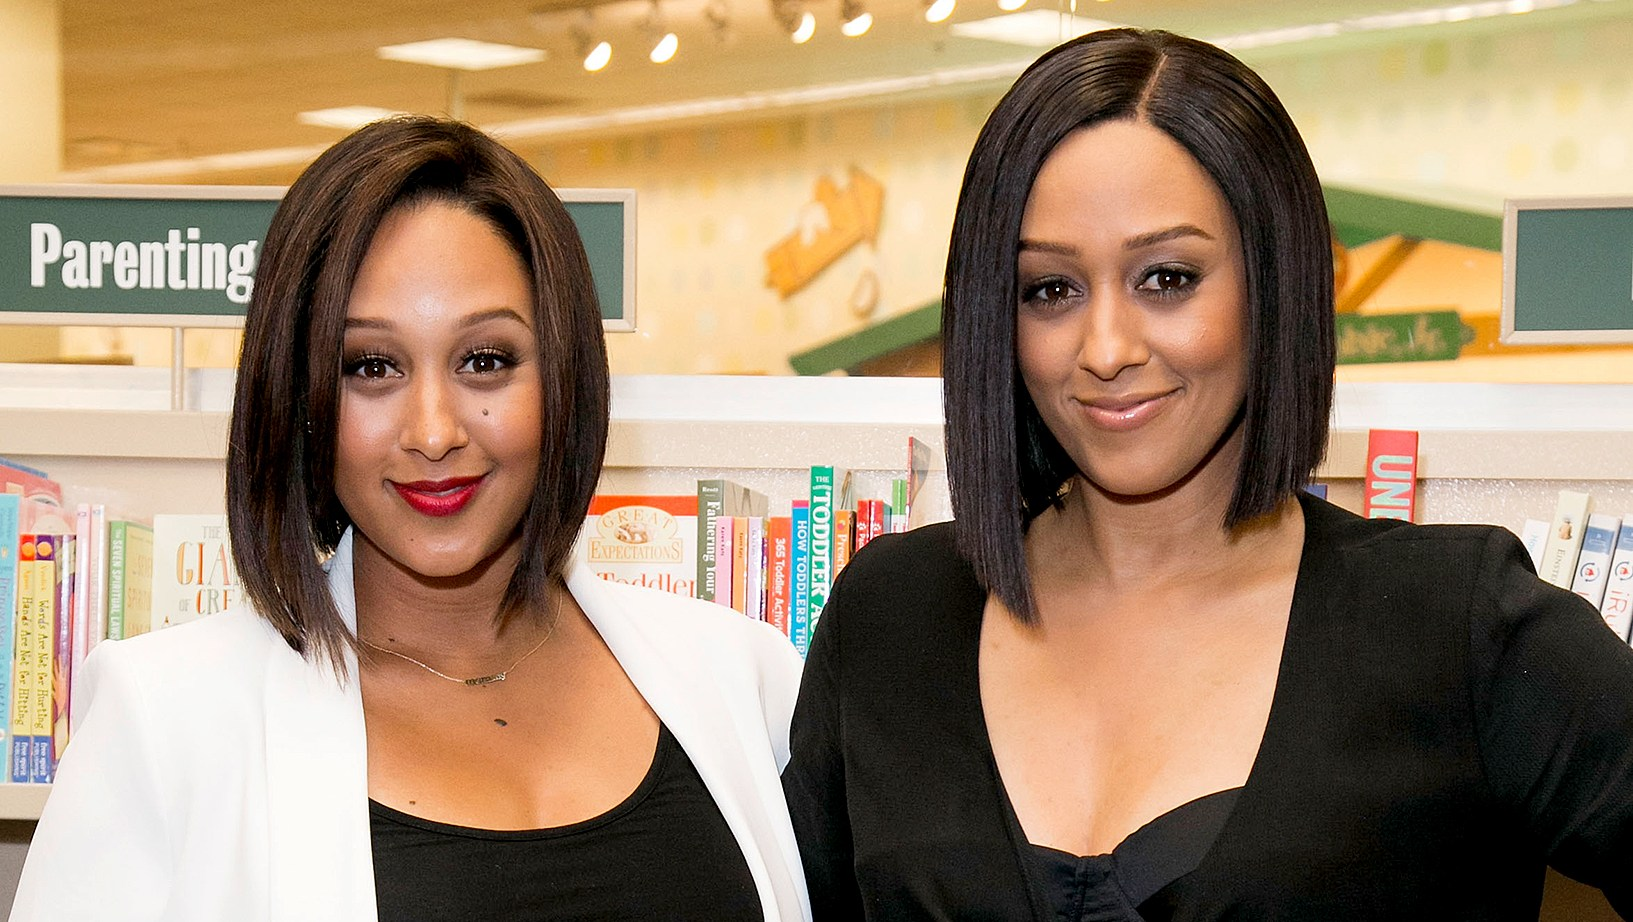 Tia-and-Tamera-Mowry-drinks-breast-milk